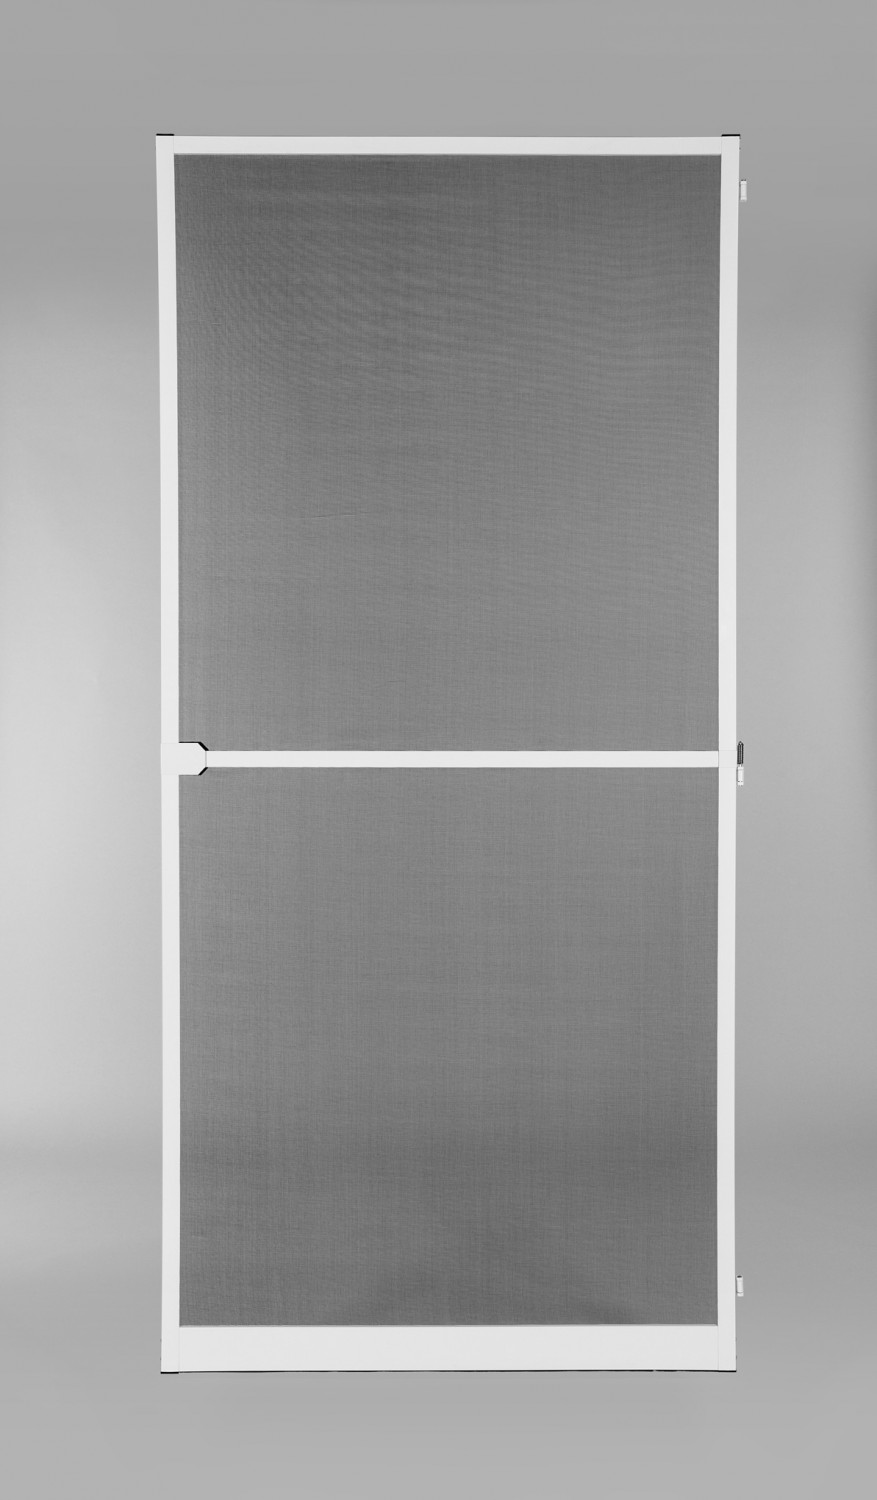 Insect protection door fly screen aluminum frame master for Screen door frame